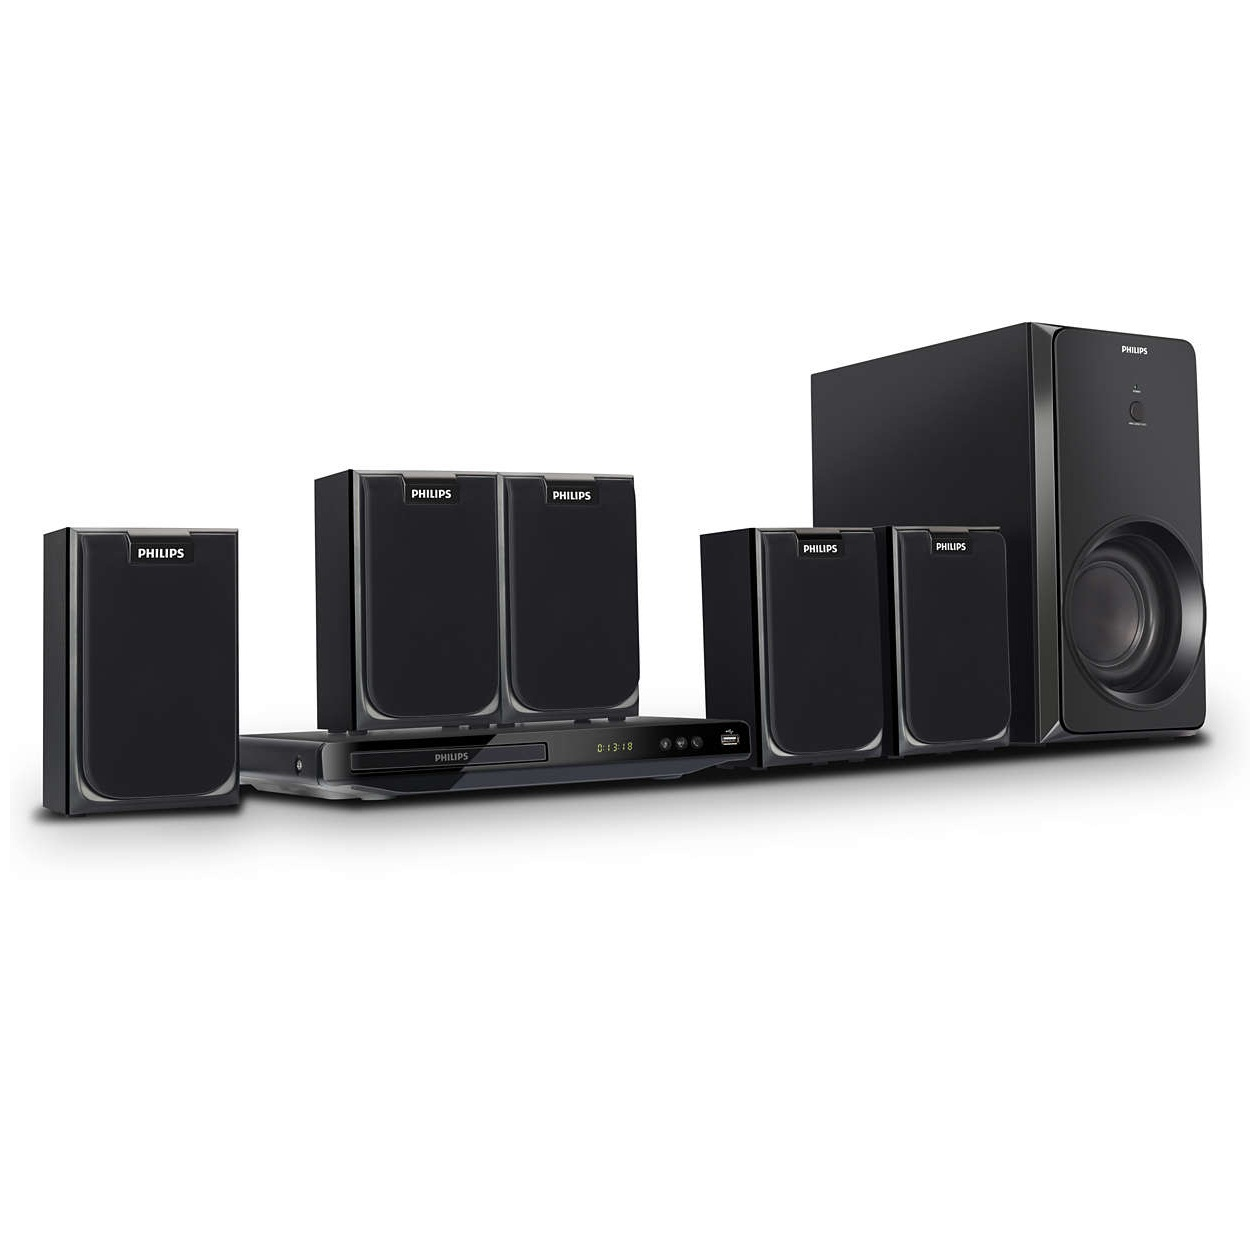 Philips Dvd Home Theatre Price 2018 Latest Models Specifications